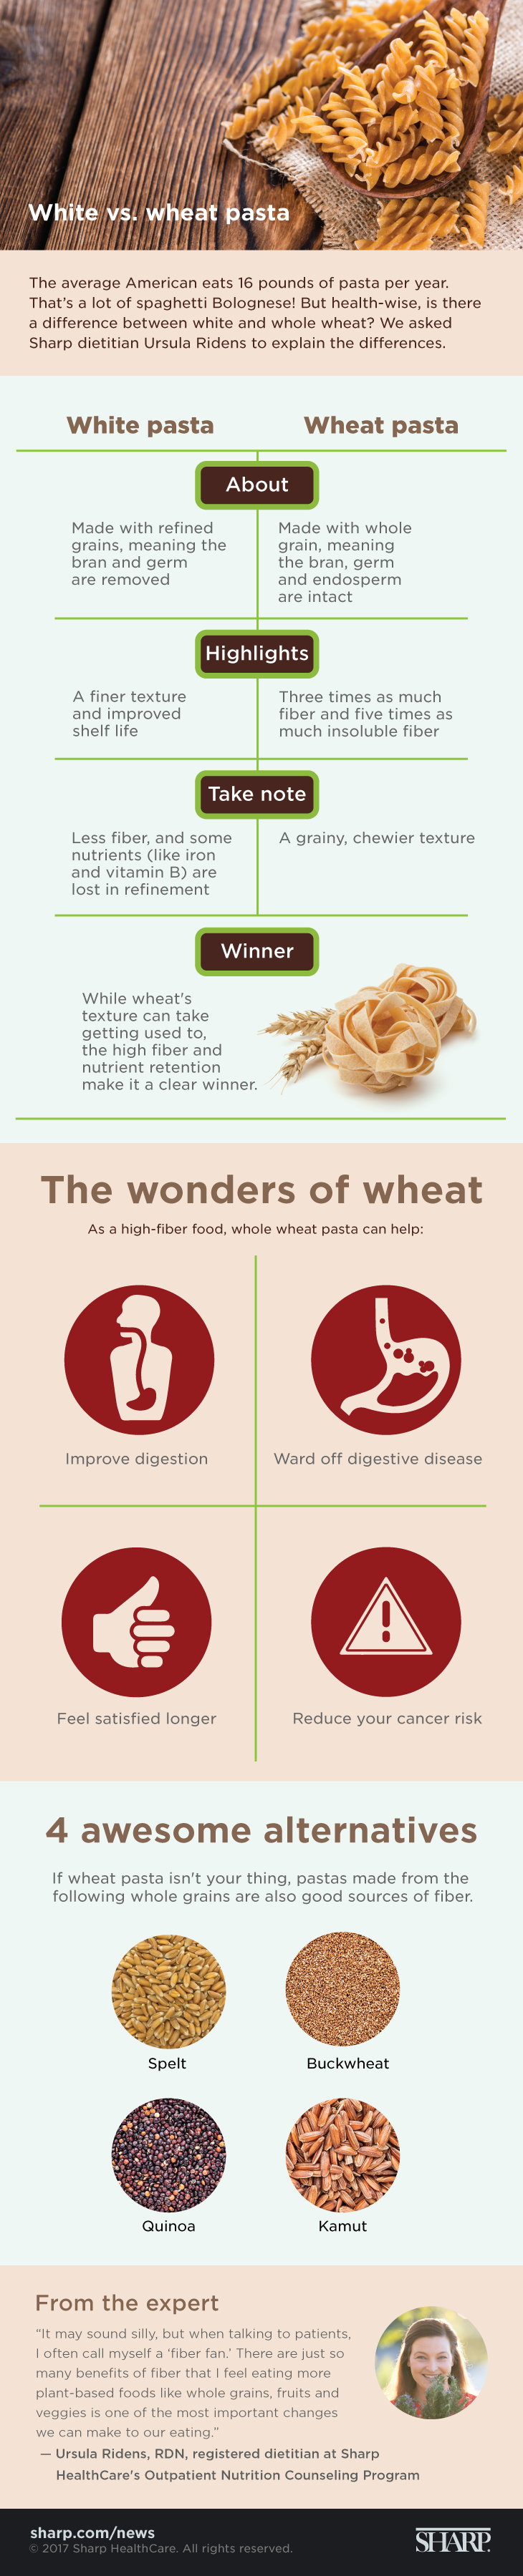 White vs. wheat pasta (infographic). White vs. wheat pasta. The average American eats 16 pounds of pasta per year. That's a lot of spaghetti Bolognese! But health-wise, is there a difference between white and whole wheat? We asked Sharp dietitian Ursula Ridens to explain the differences. White pasta is made with refined grains, meaning the bran and germ are removed. Wheat pasta is made with whole grain, meaning the bran, germ and endosperm are intact. White pasta has a finer texture and improved shelf life. Wheat pasta has three times as much fiber and five times as much insoluble fiber. White pasta has less fiber, and some nutrients (like iron and vitamin B) are lost in refinement. Wheat pasta has a grainy, chewier texture. While wheat's texture can take getting used to, the high fiber and nutrition retention make it a clear winner. In fact, as a high-fiber food, whole wheat pasta can help improve digestion, ward off digestive disease, help you feel satisfied longer and reduce your cancer risk. If wheat pasta isn't your thing, there are four awesome alternatives. Pastas made from the whole grains spelt, buckwheat, quinoa and kamut are also good sources of fiber. It may sound silly, but when talking to patients, I often call myself a fiber fan, says Ursula Ridens, RDN, a registered dietician at Sharp HealthCare's Outpatient Nutrition Counseling Program. There are just so many benefits of fiber that I feel eating more plant-based foods like whole grains, fruits and veggies is one of the most important changes we can make to our eating.